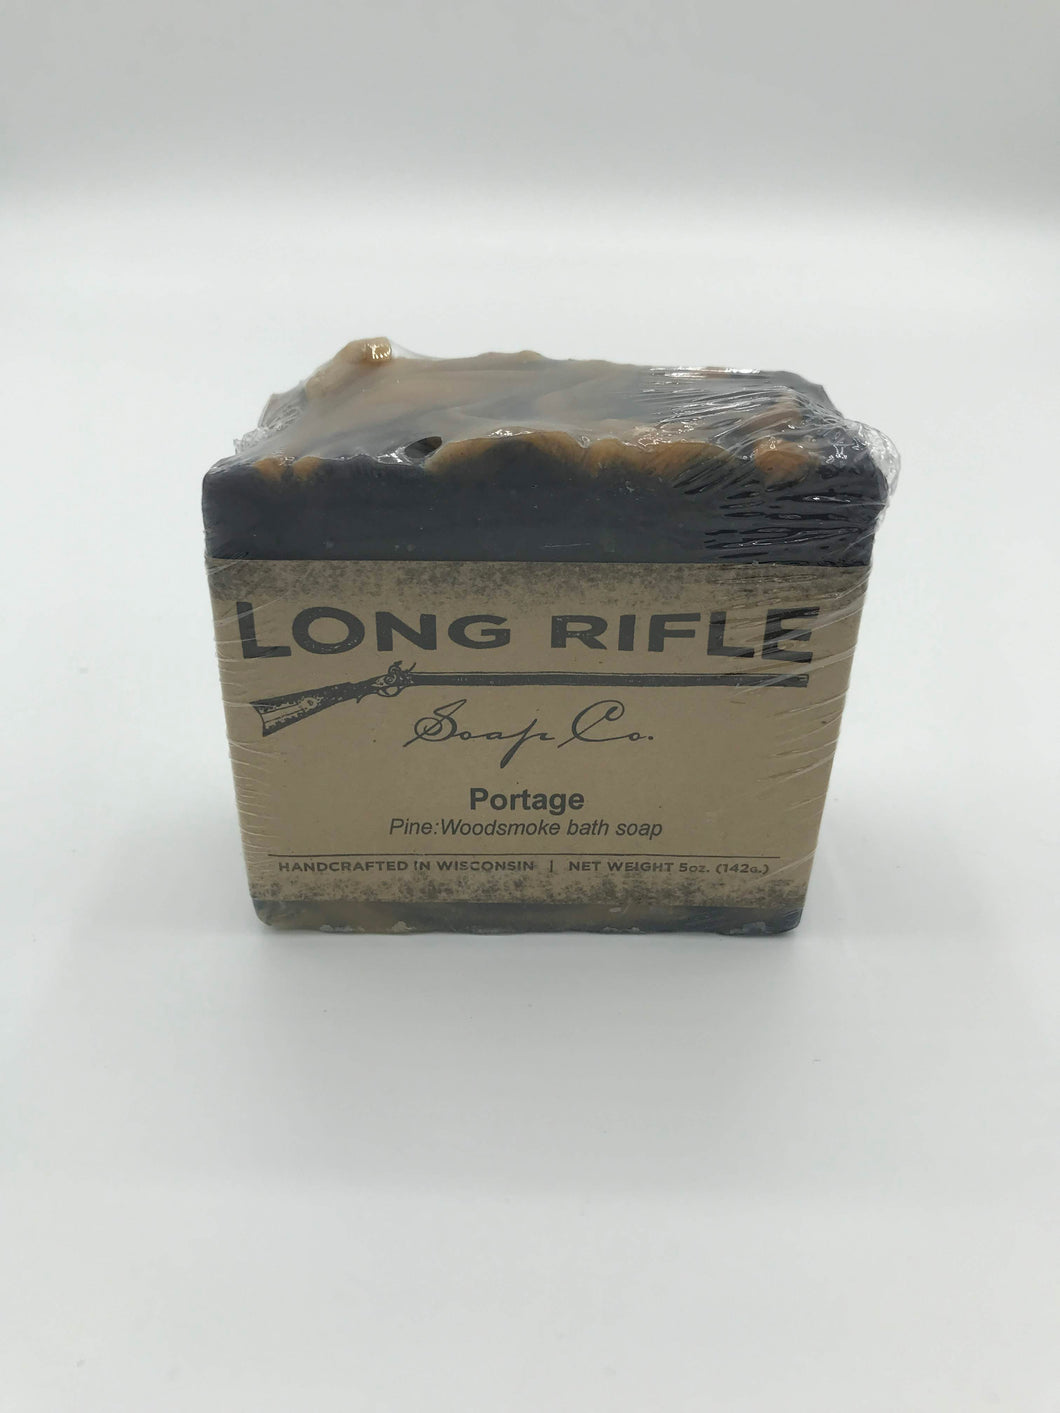 Portage Bar Soap